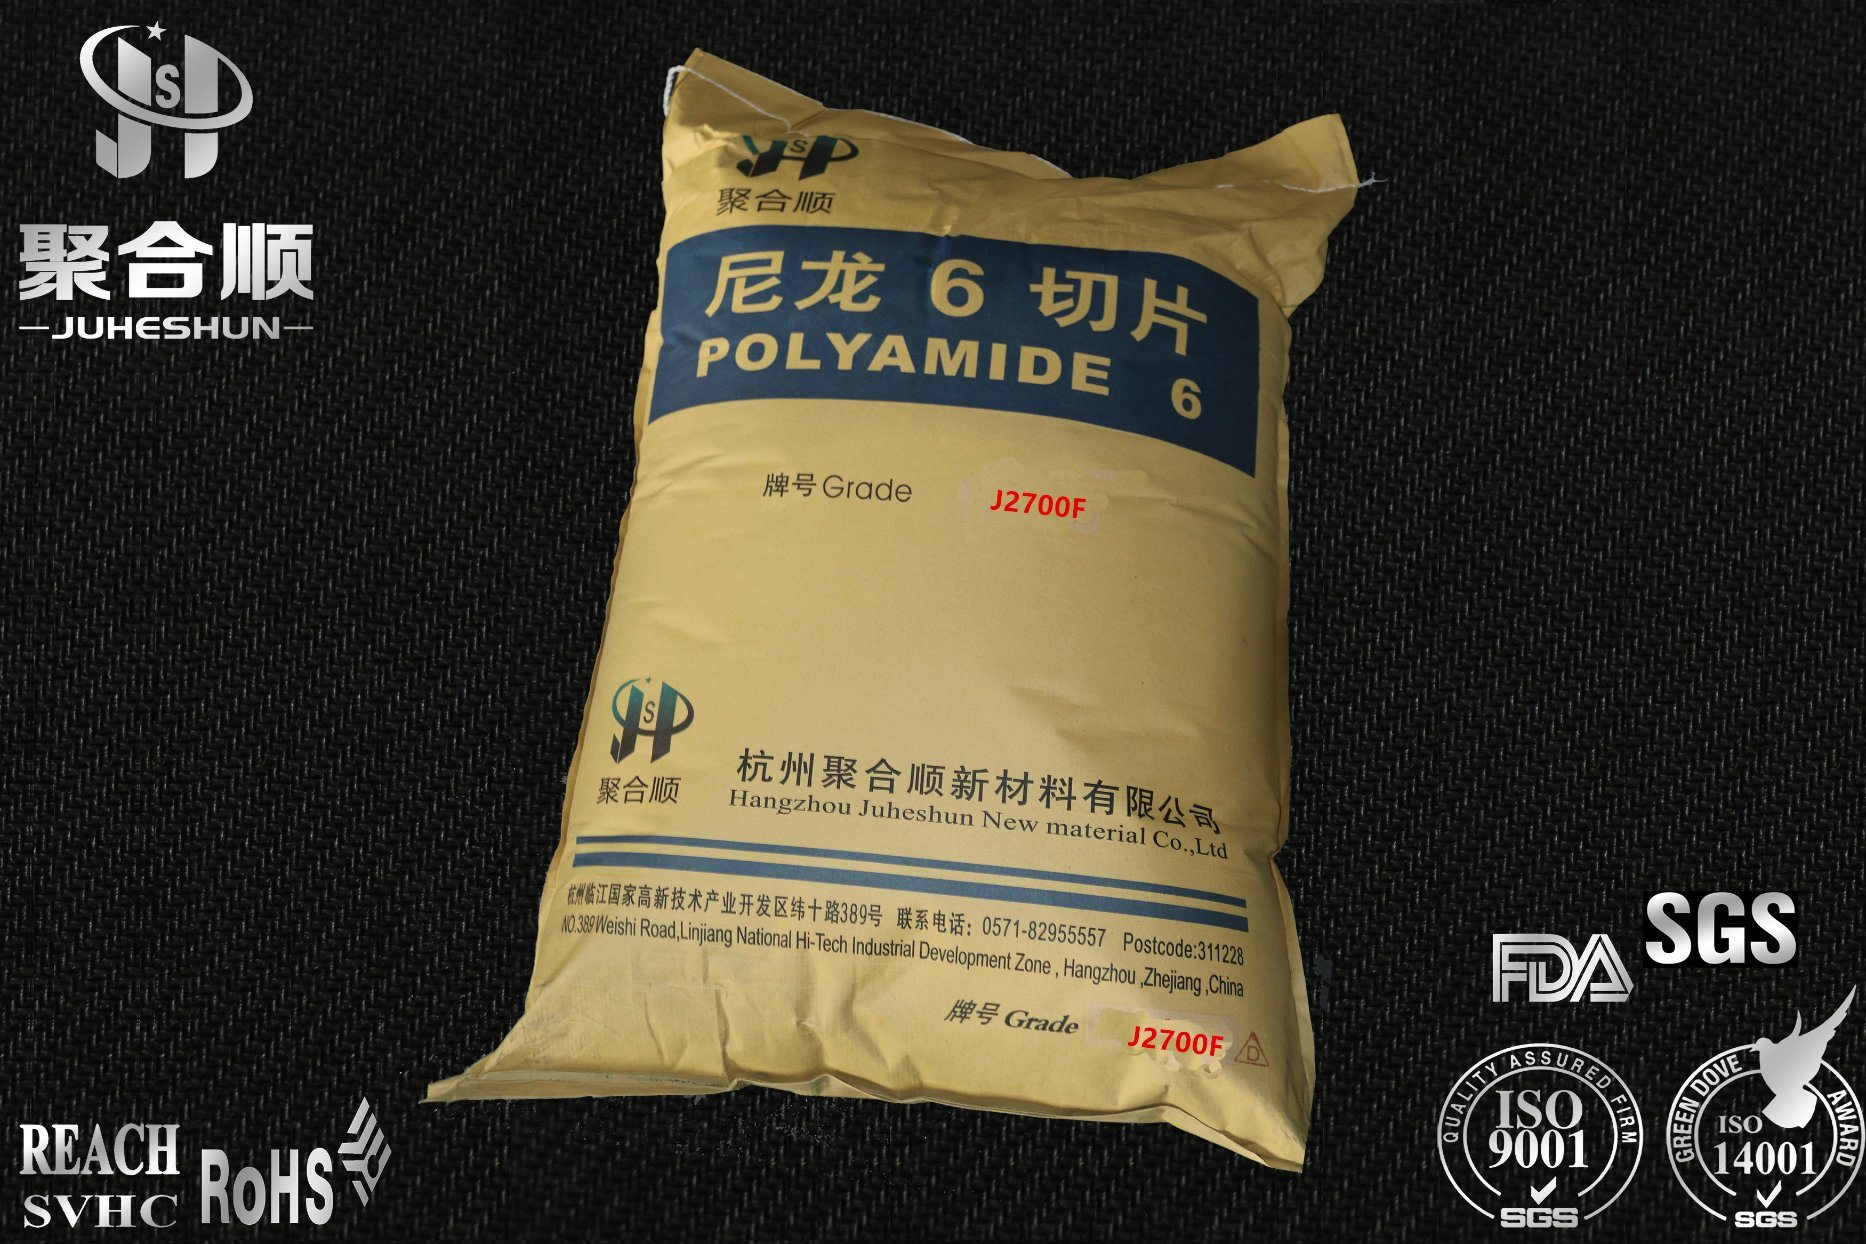 J2700f/Civilian High-Speed Spinning/ Nylon 6 Chips/Polyamide 6 Granules/Pellet/Nylon6/PA6 Granules